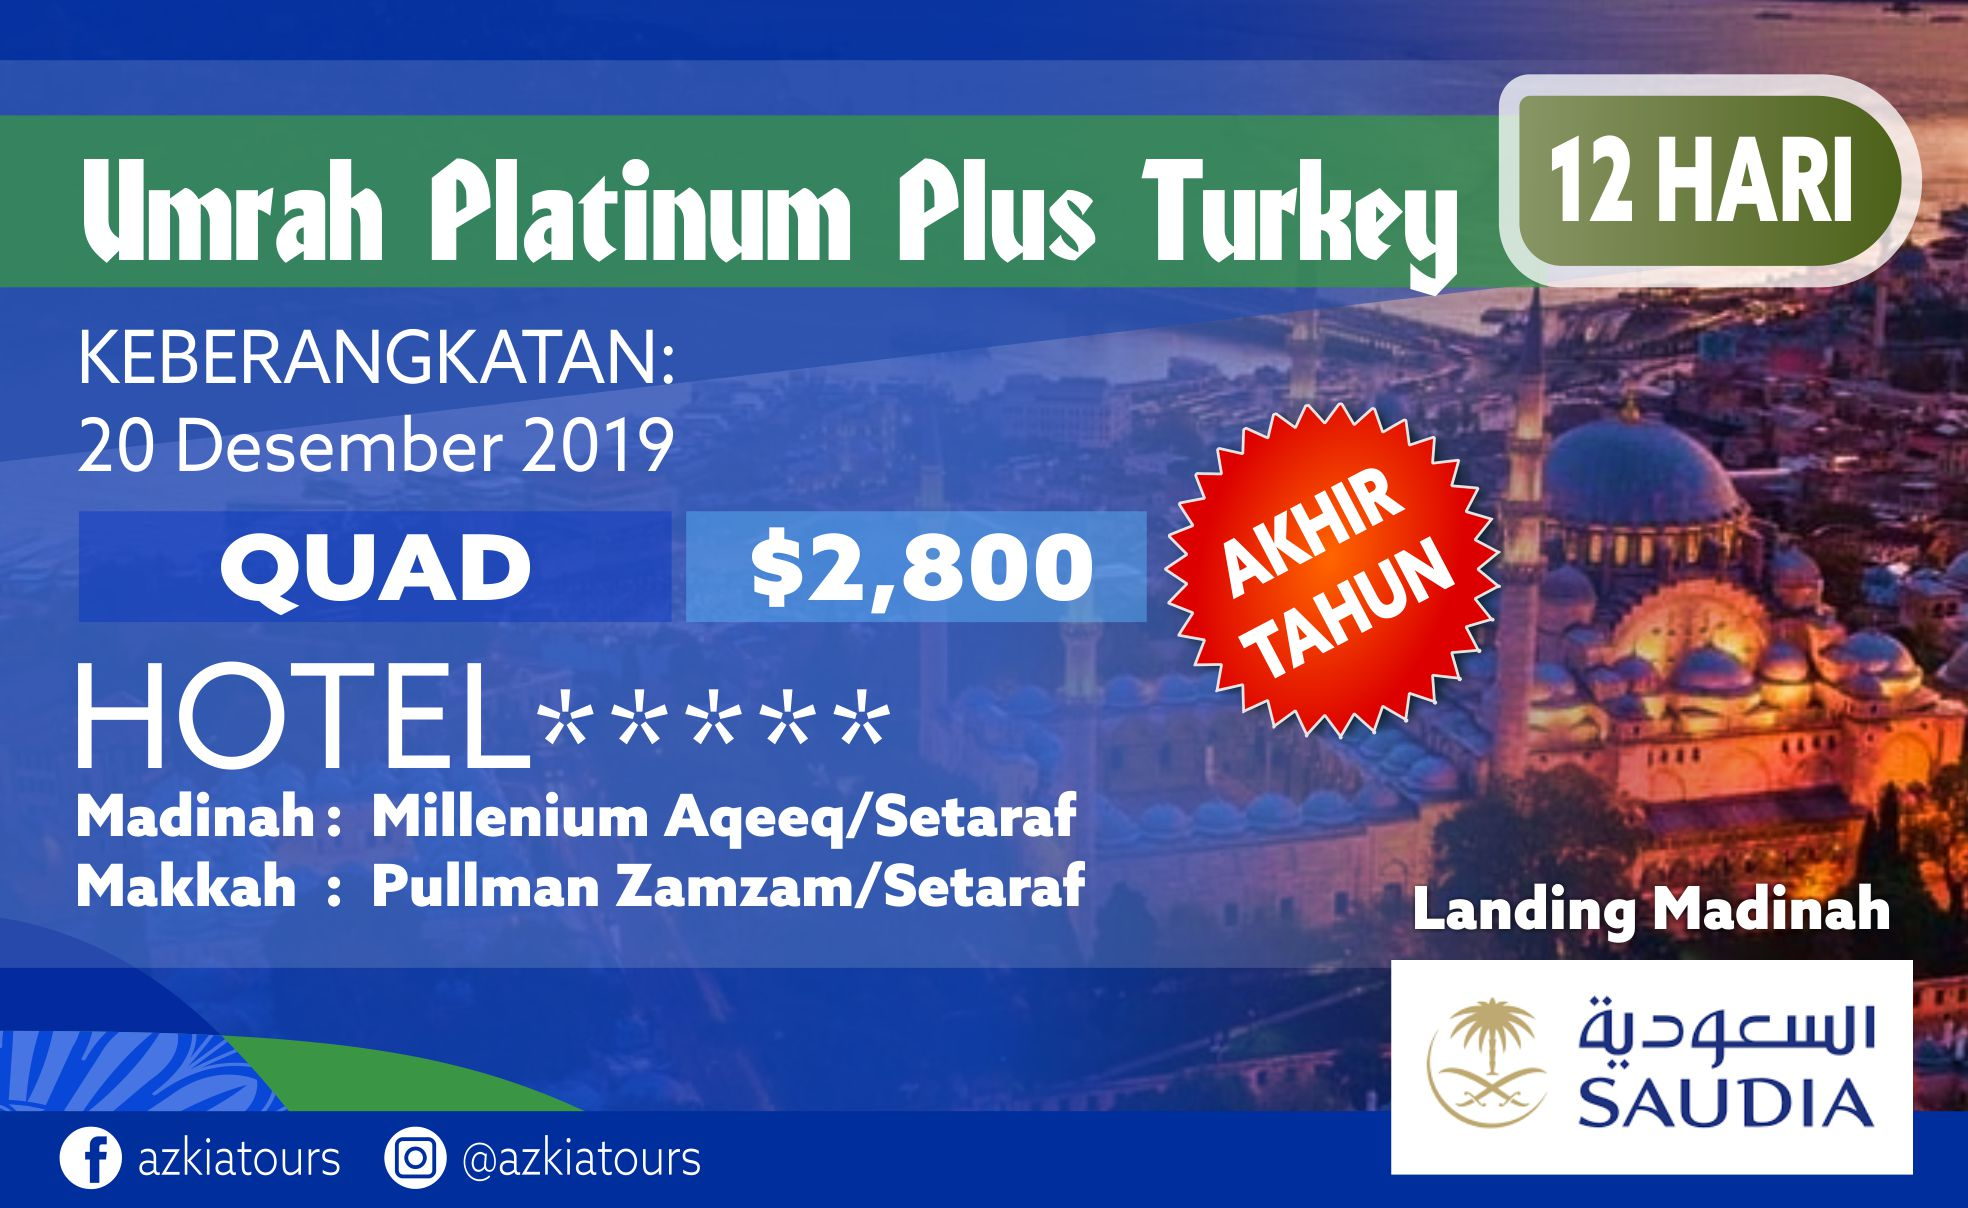 Umrah Platinum Plus Turkey